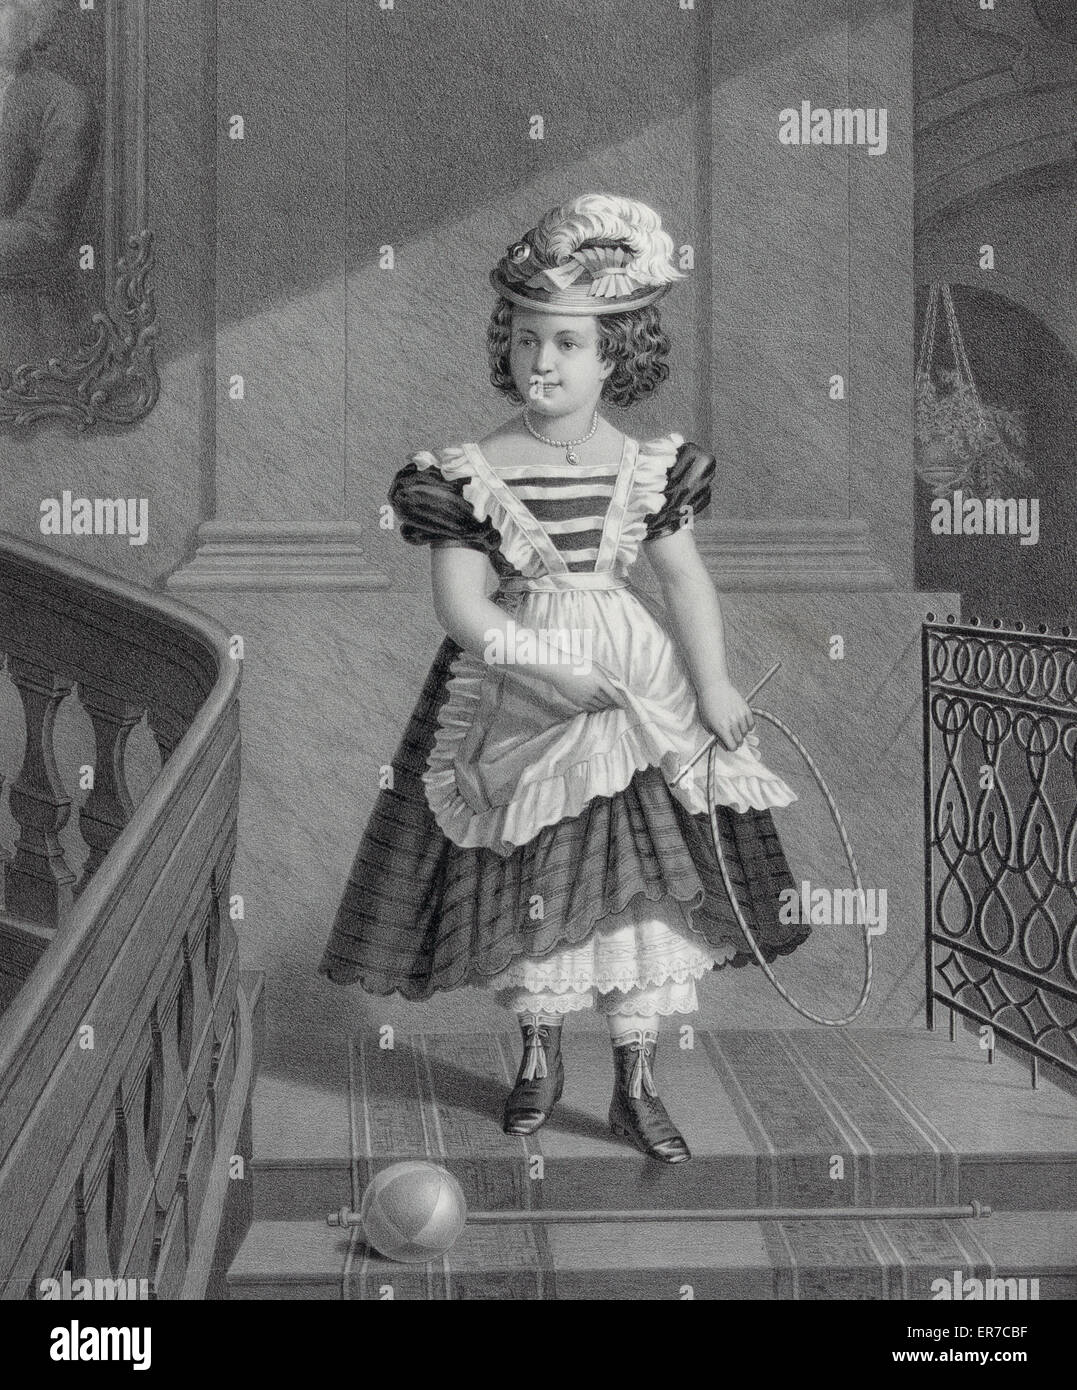 Bright and early. Date c1872. - Stock Image